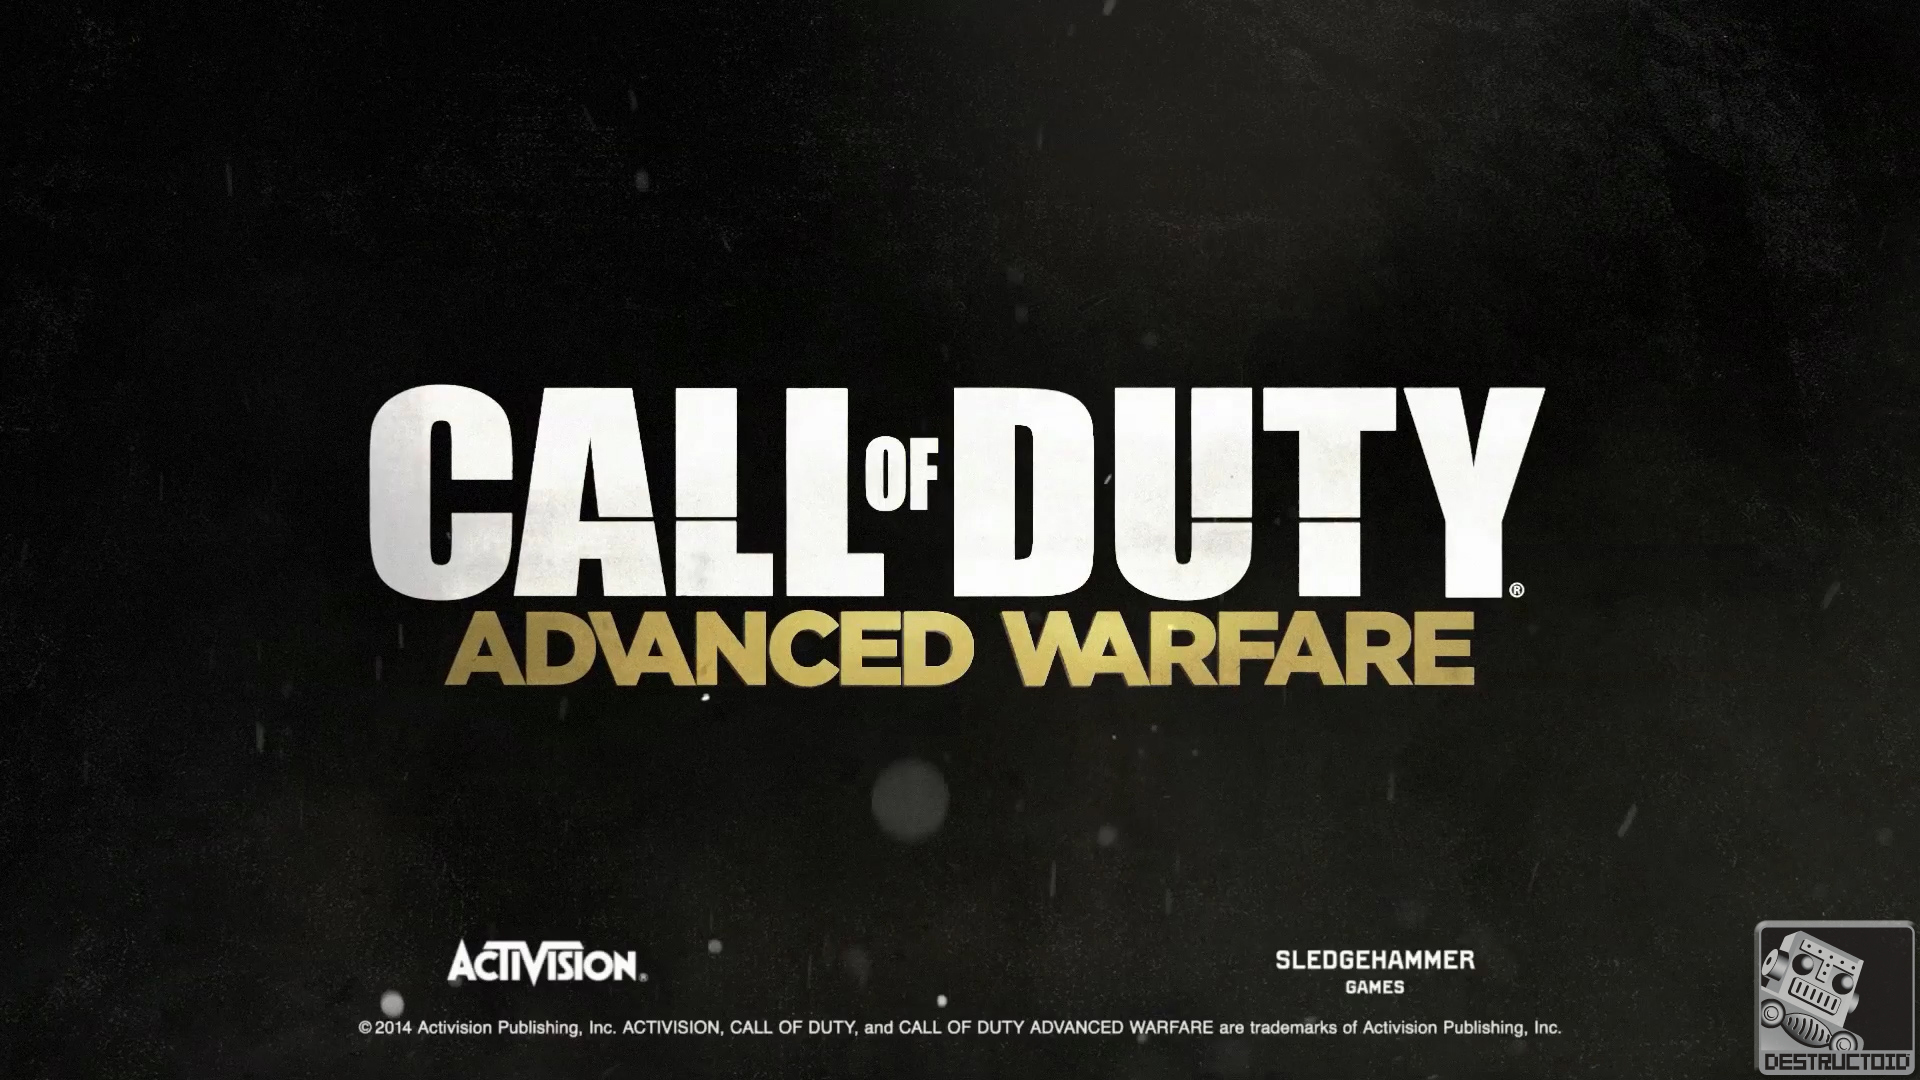 6souls games youre theres unenjoyable reason have turned sound this playing still halo find just everyone hawks sitting duty gunning prone corner running into shit mini forced advanced cod4 again digital dewanddoritos would gladly never shut qbert edition boss ripped prestige 4-15th call post cods been selling back warfare edit gamestop